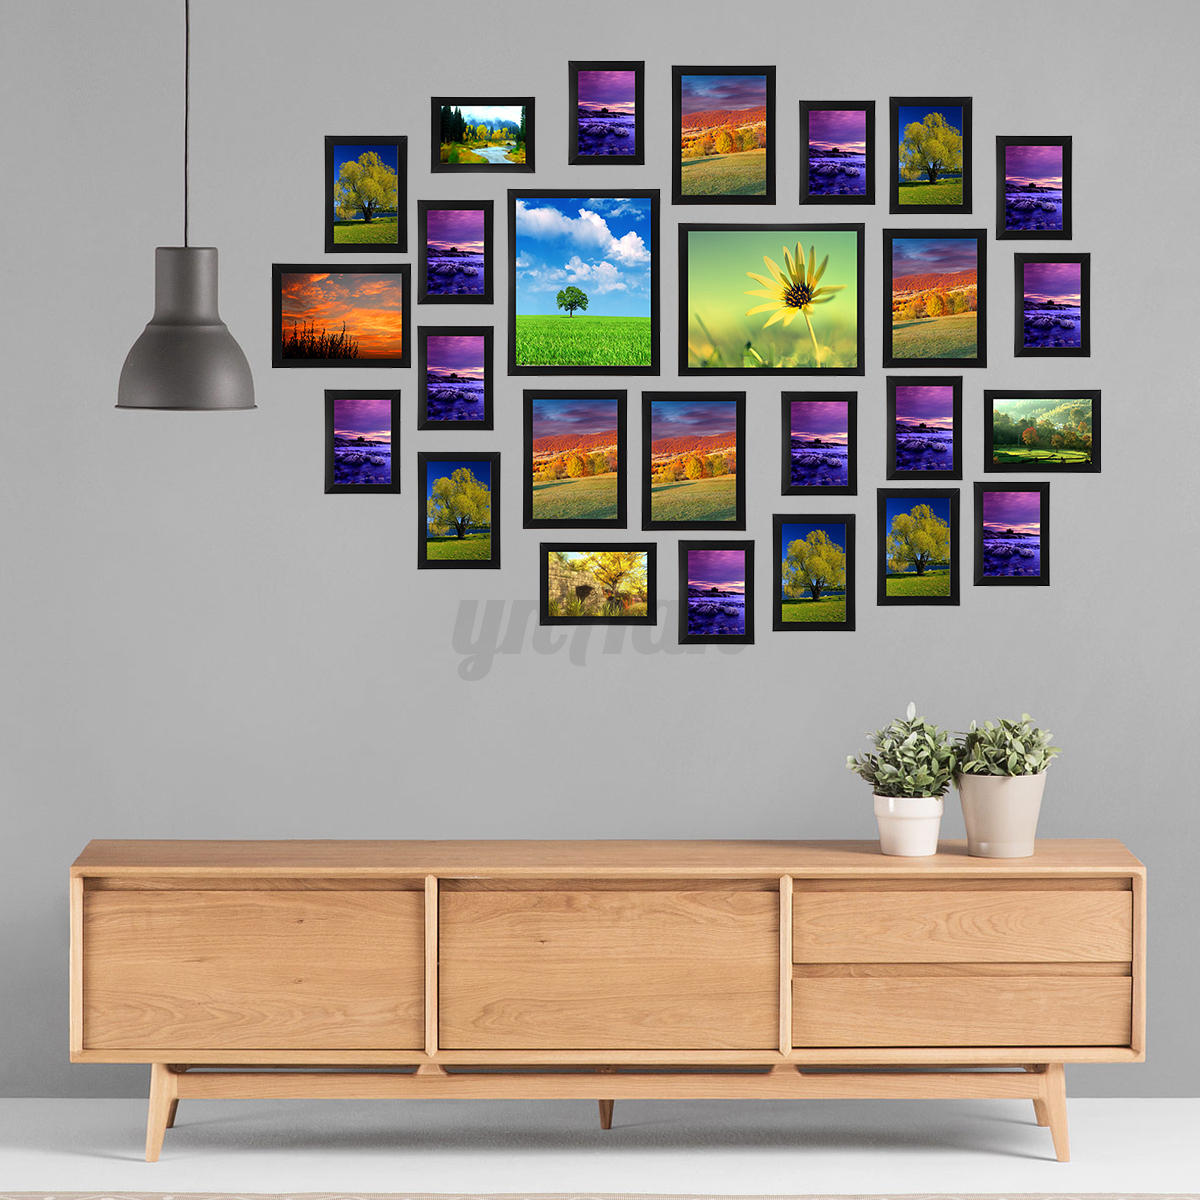 23 26pcs multi photo picture frames set diy home decor wall art collage family ebay - Home decorated set ...